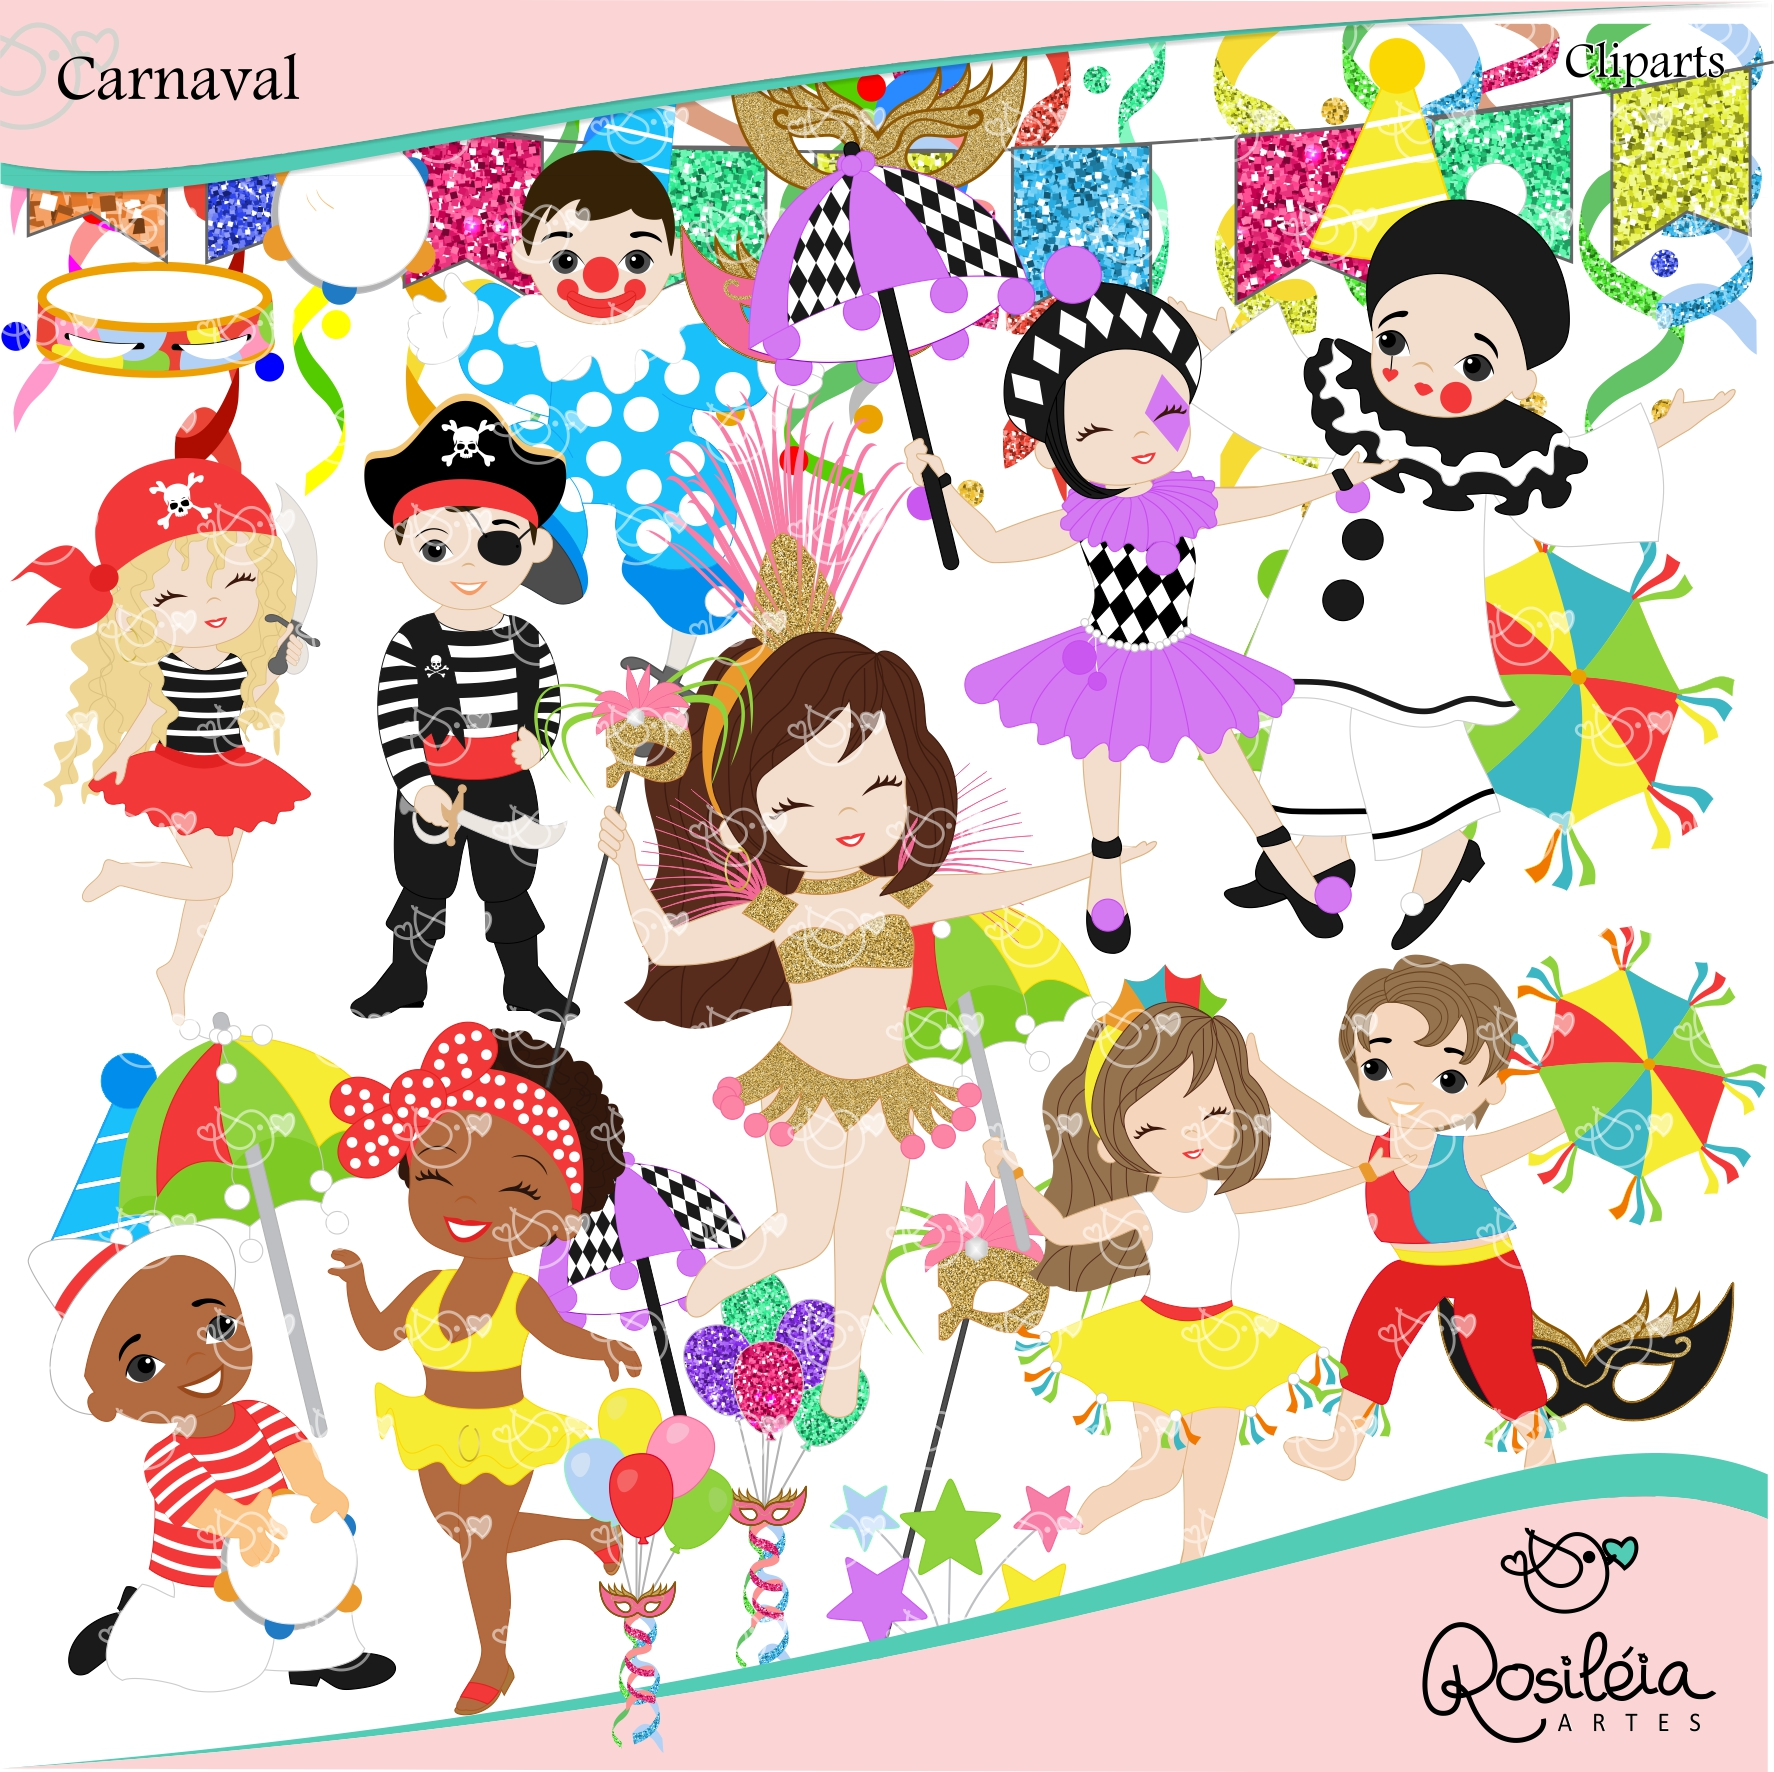 Carnaval clipart vector freeuse library Carnaval Clipart | Elo7 vector freeuse library